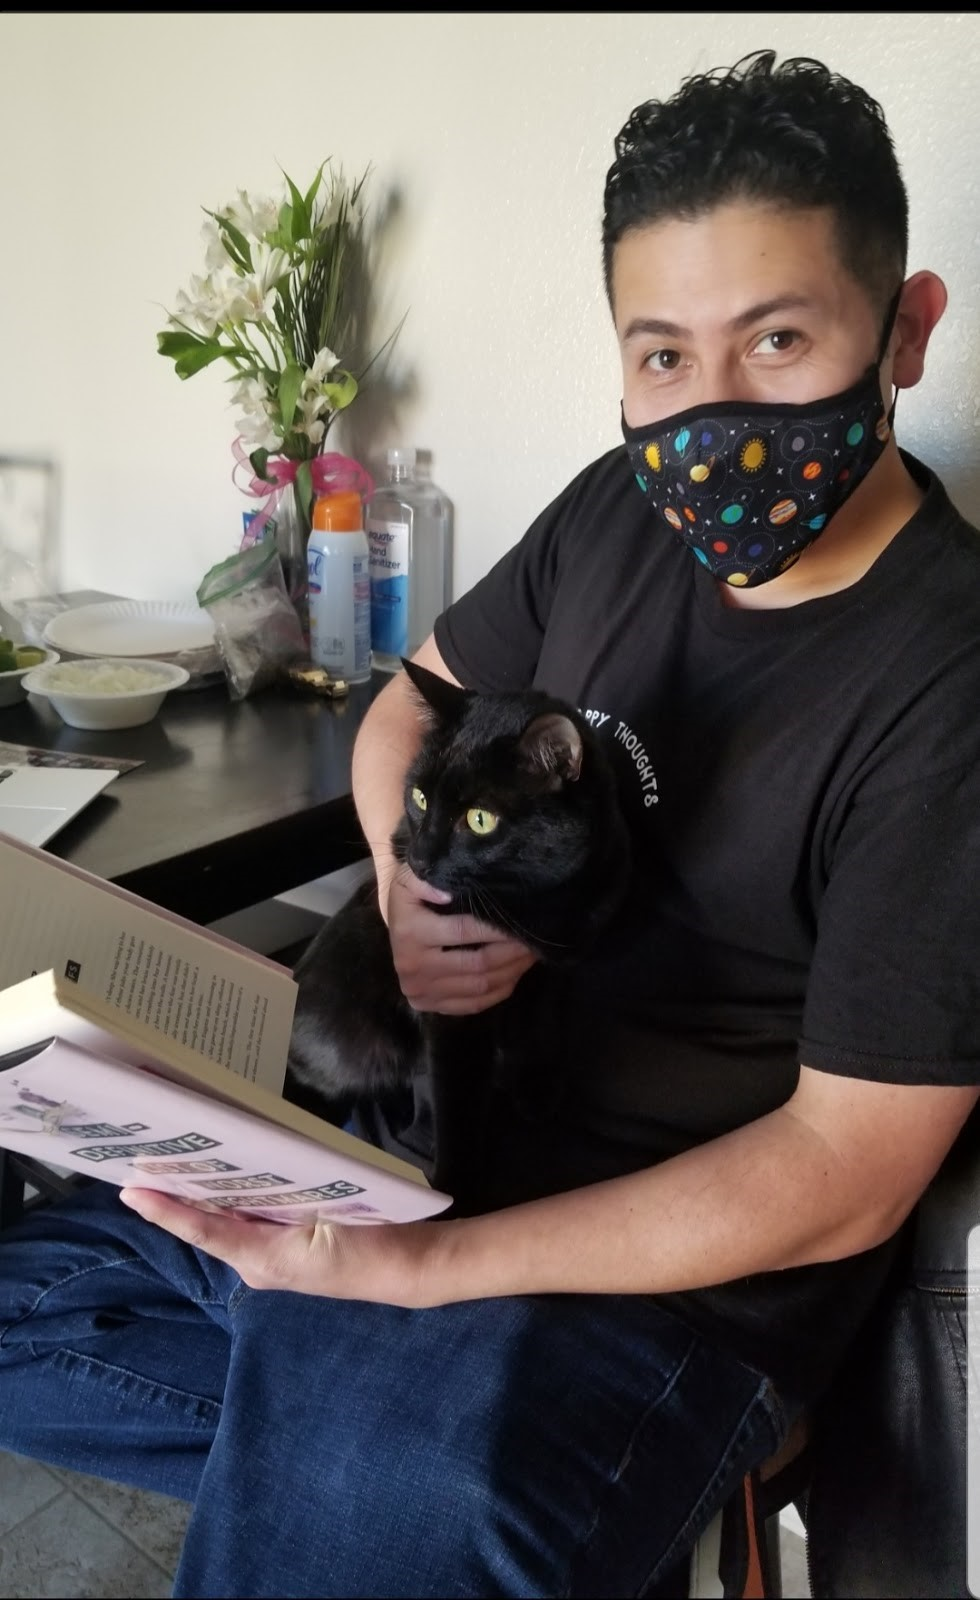 Israel sits at a table with a black cat in his lap, reading a book.